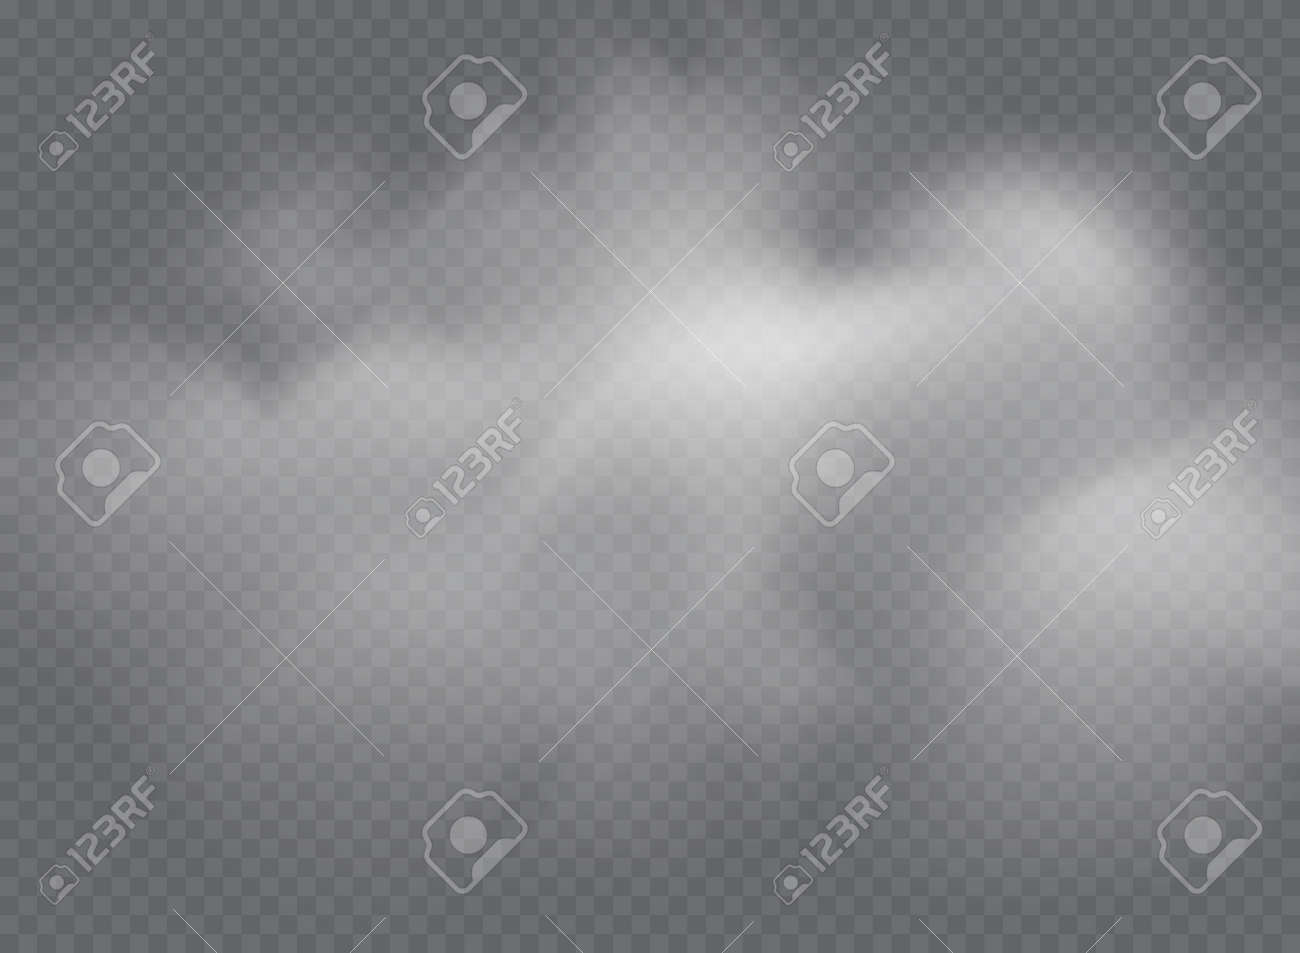 Fog or smoke isolated transparent special effect. White vector cloudiness, mist or smog background - 169711991